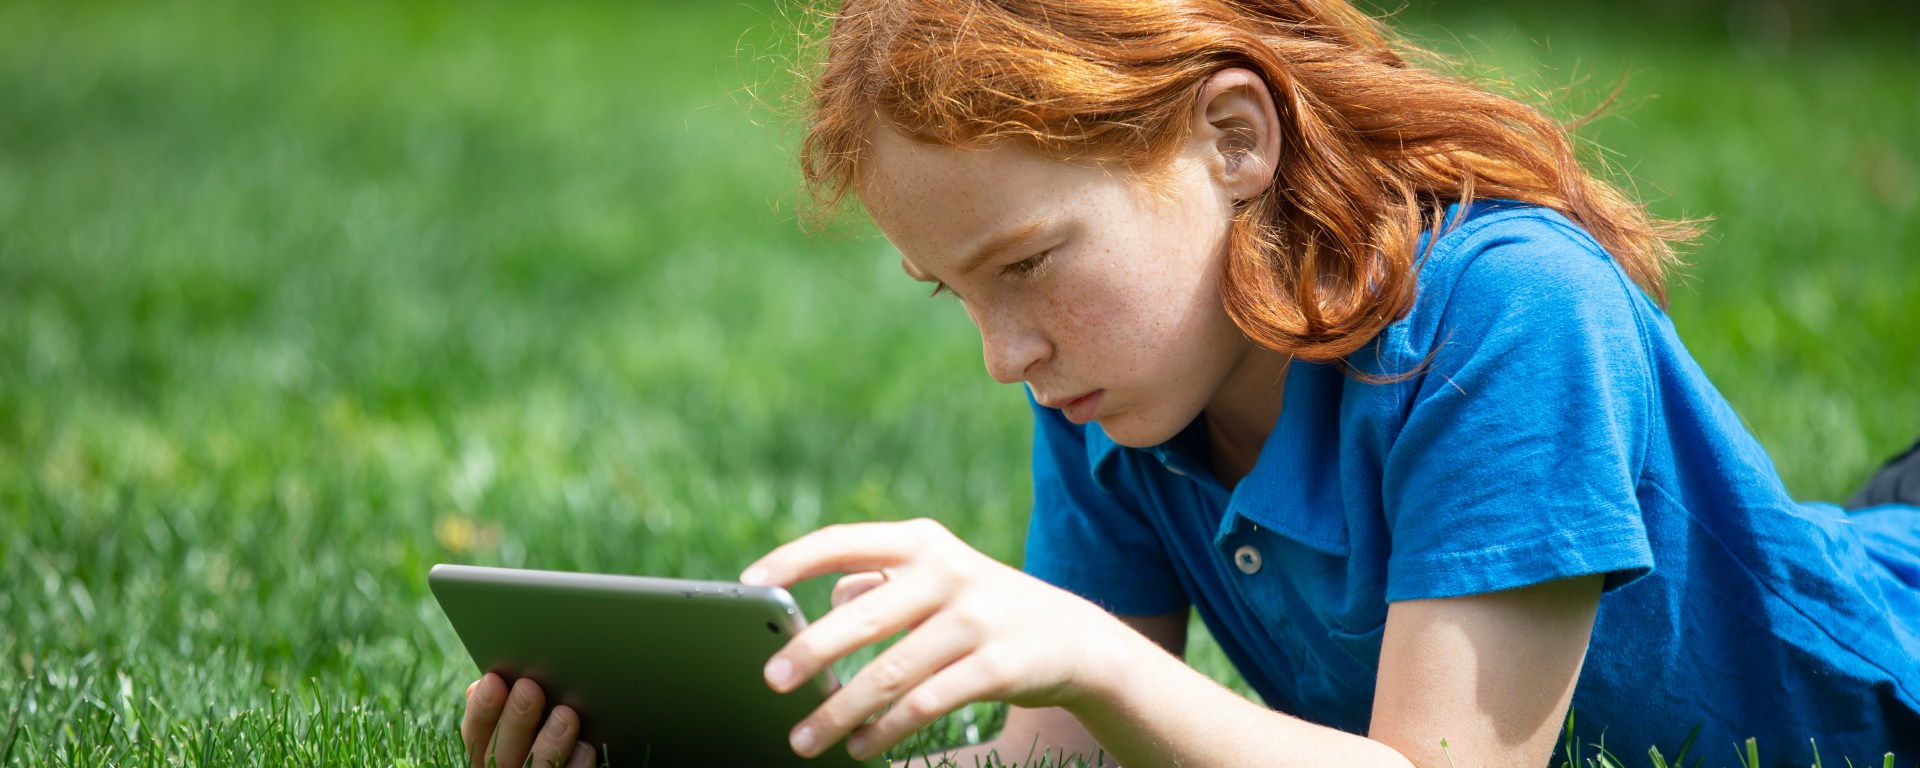 Student lays in grass on iPad